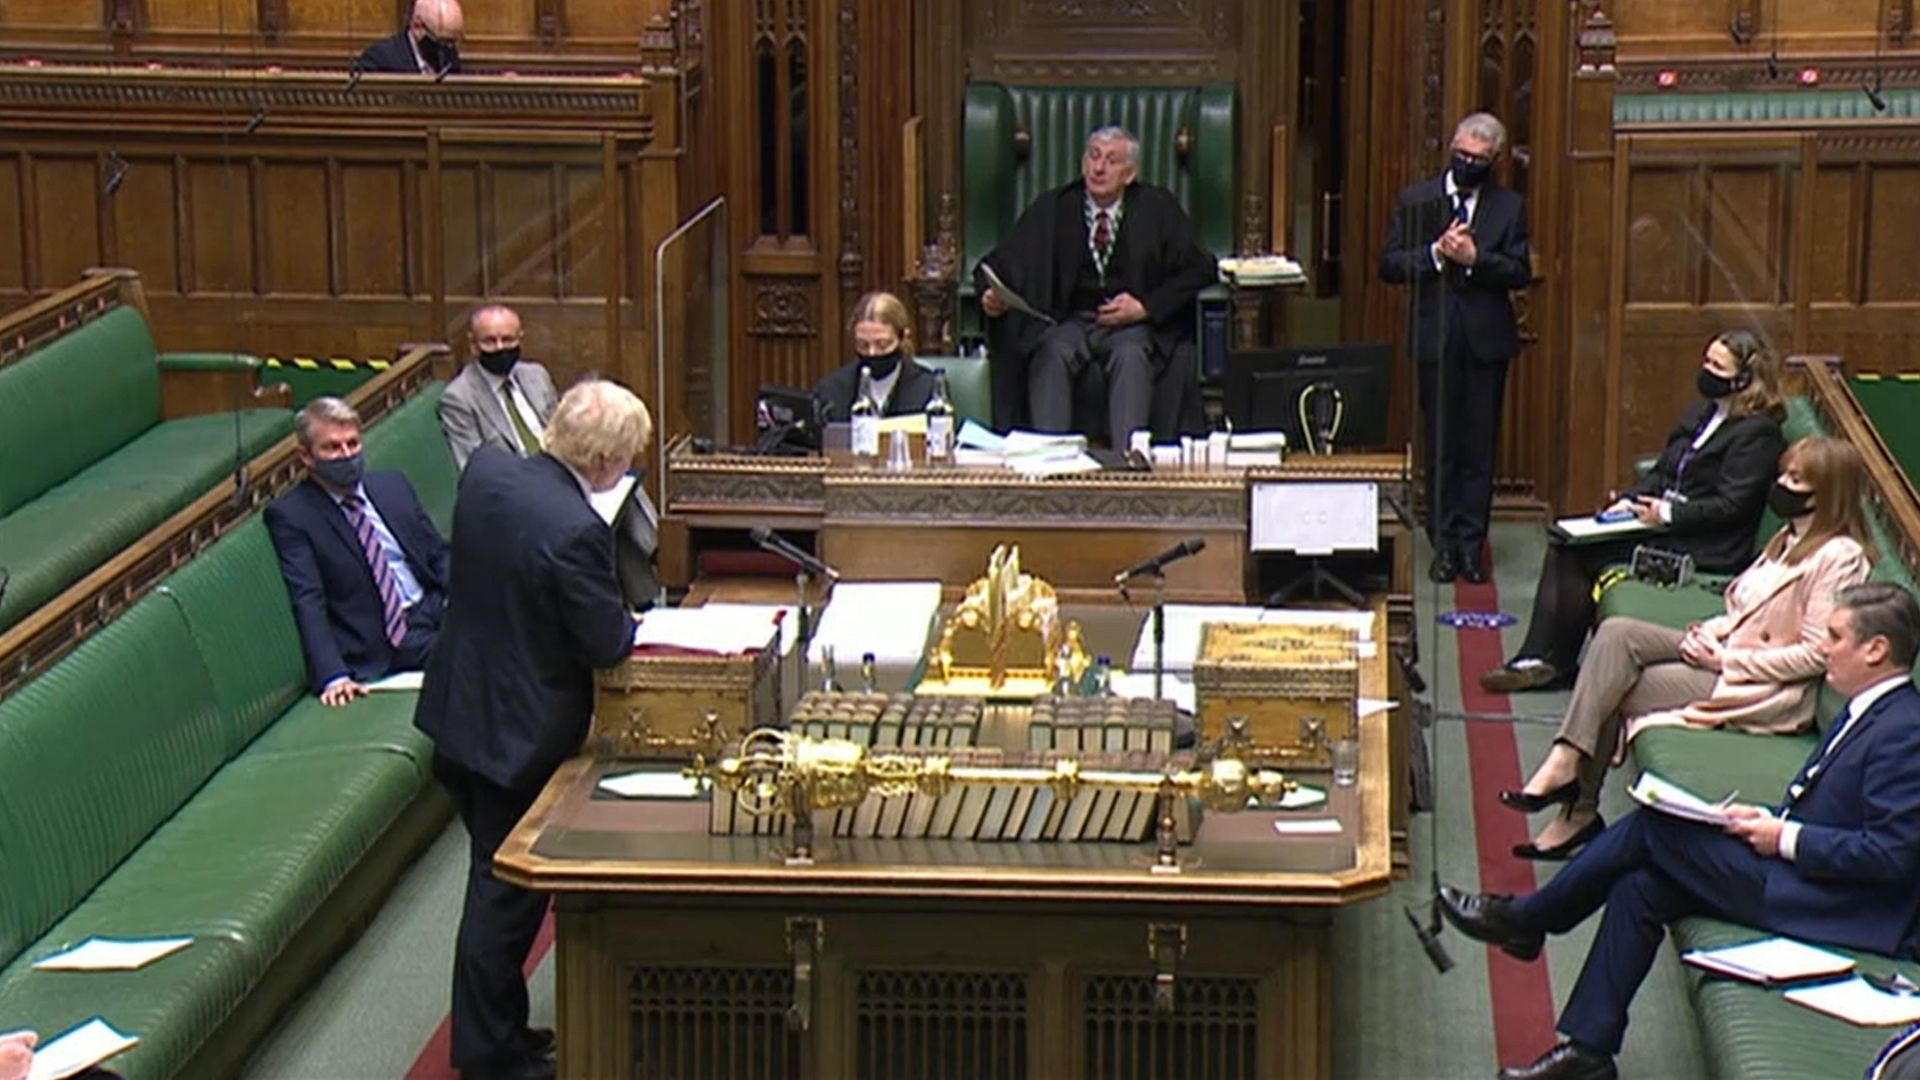 Prime minister Boris Johnson speaks during Prime Minister's Questions in the House of Commons, London. - Credit: PA